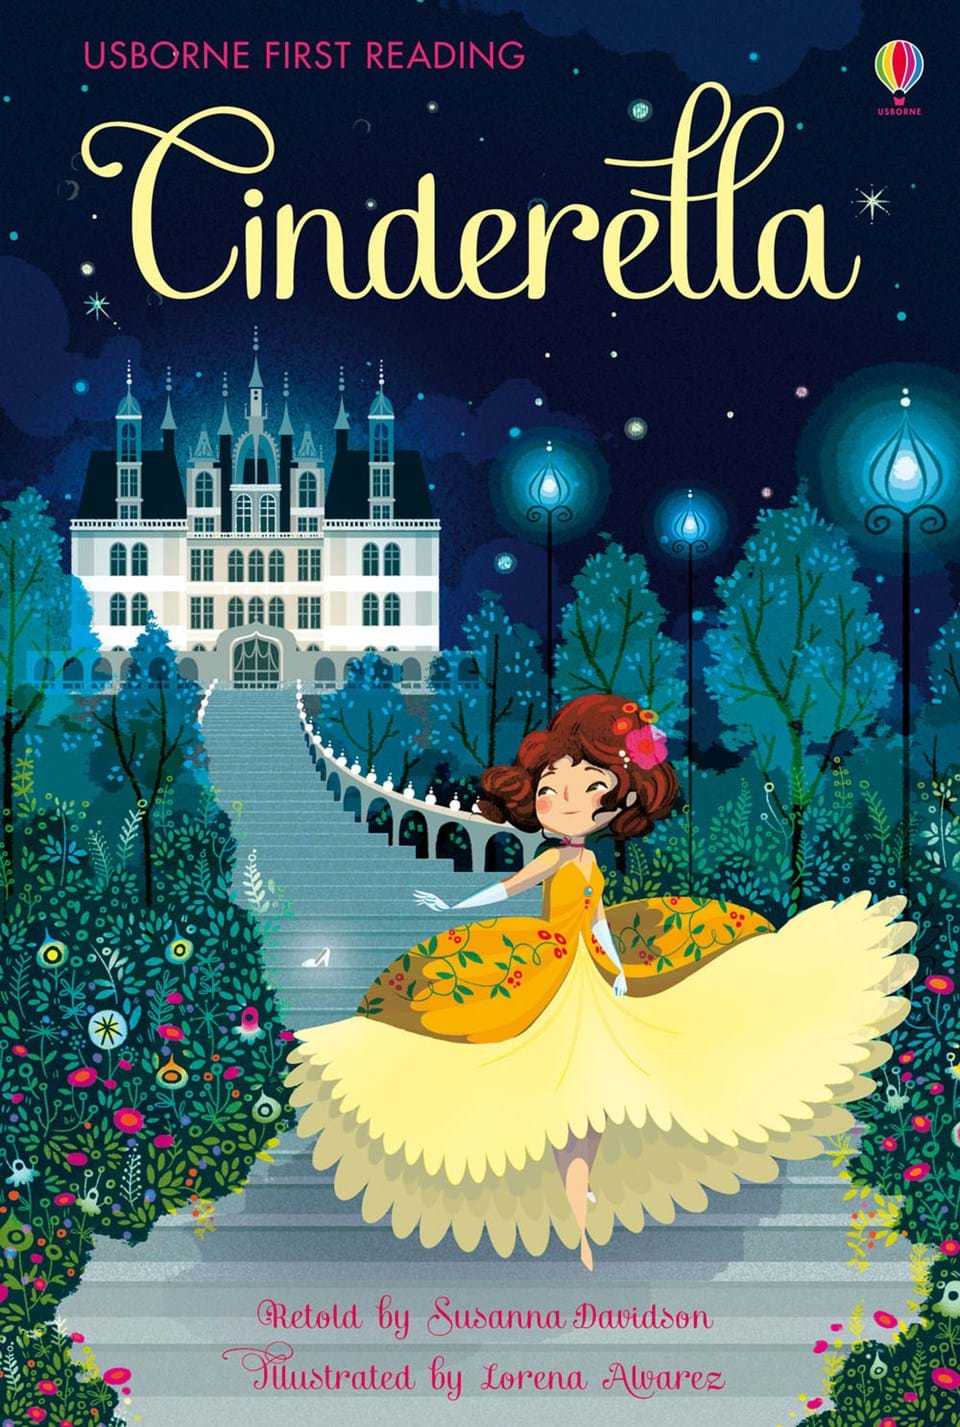 book review of cinderella fairy tale